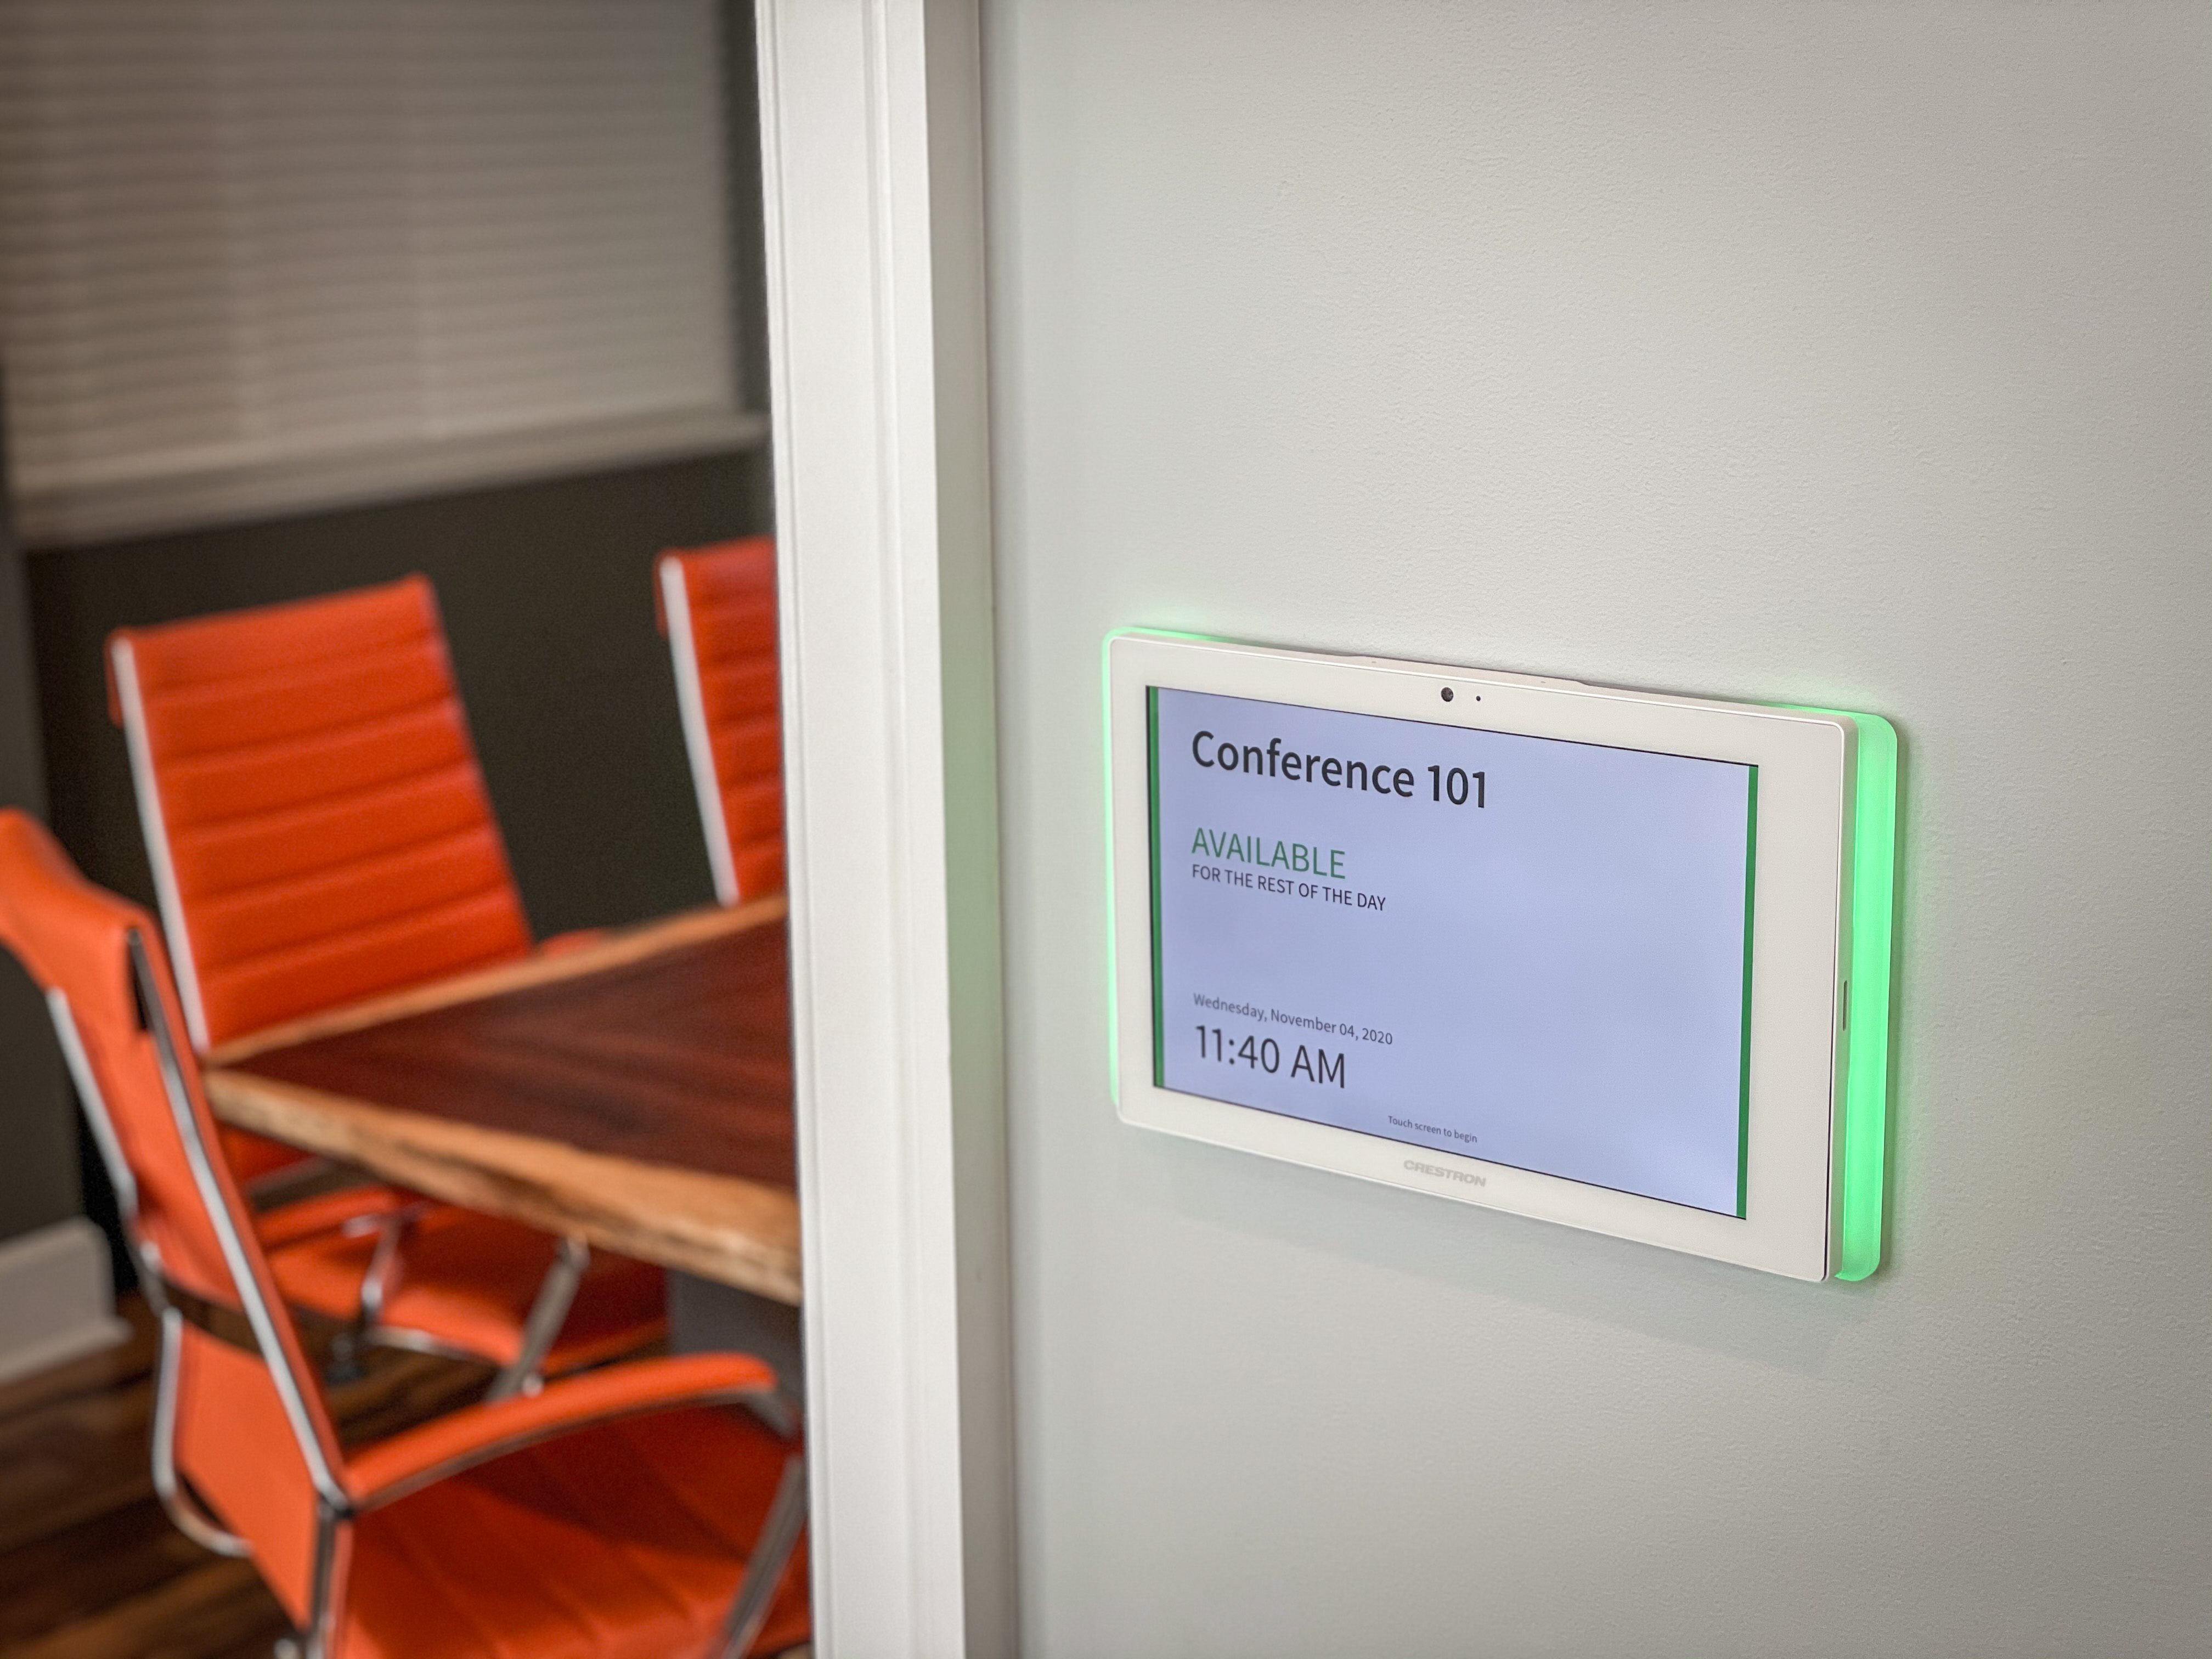 Room scheduling device